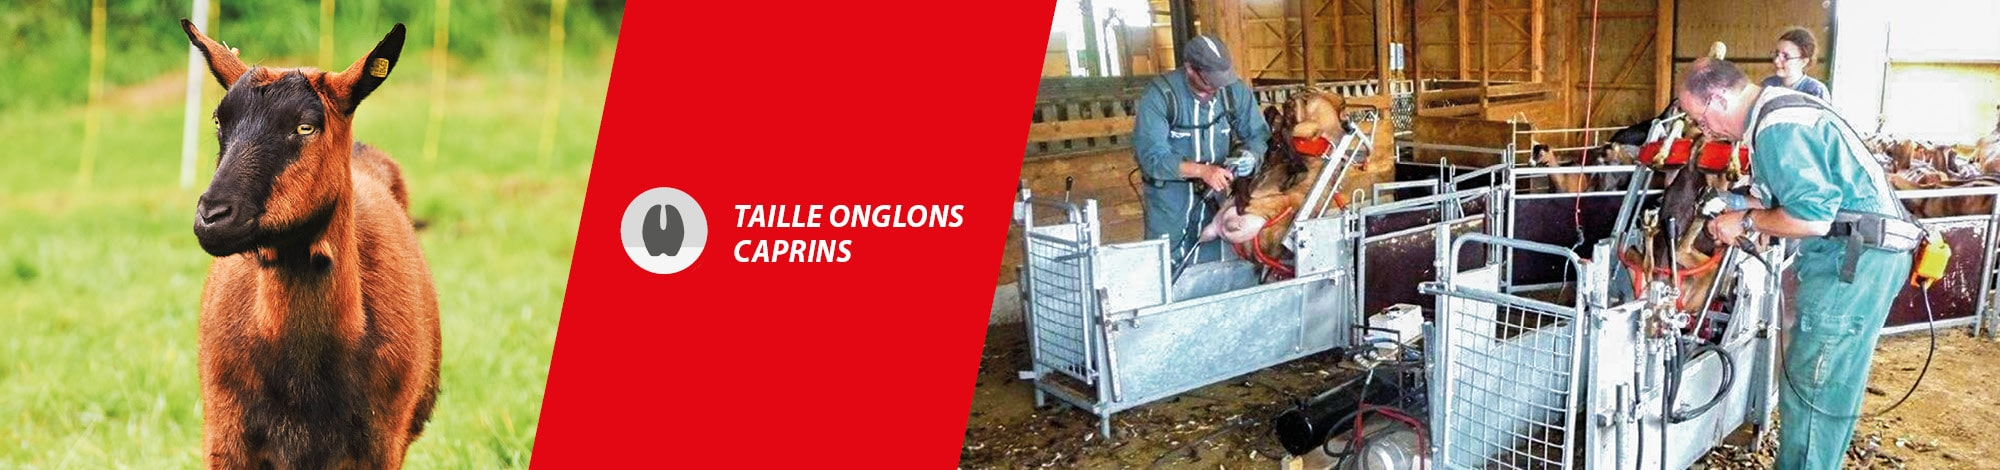 Slide - Taille onglons caprins